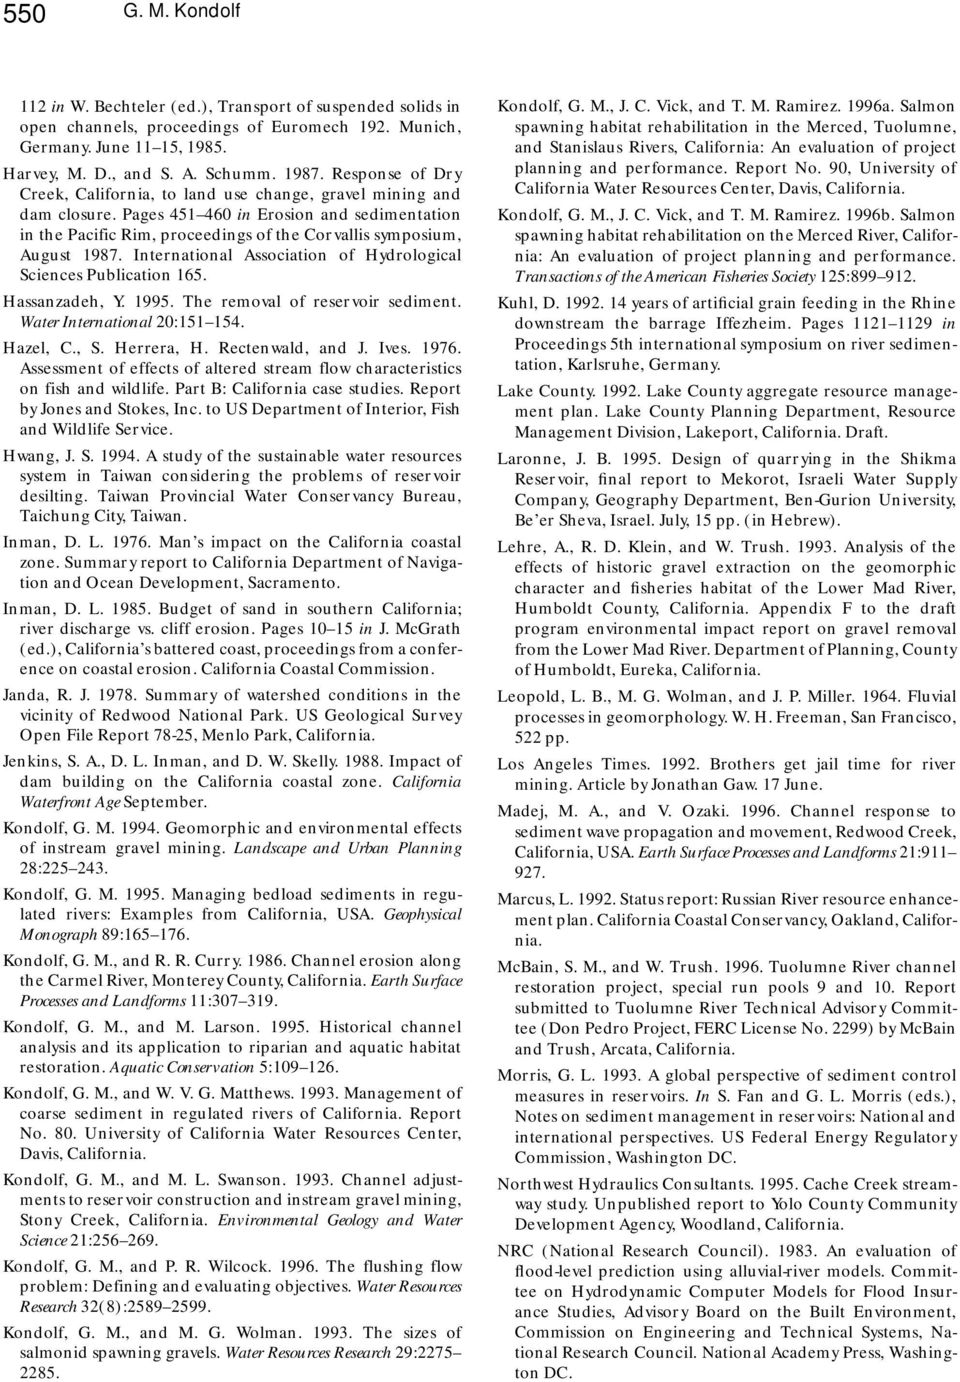 Pages 451 460 in Erosion and sedimentation in the Pacific Rim, proceedings of the Corvallis symposium, August 1987. International Association of Hydrological Sciences Publication 165. Hassanzadeh, Y.